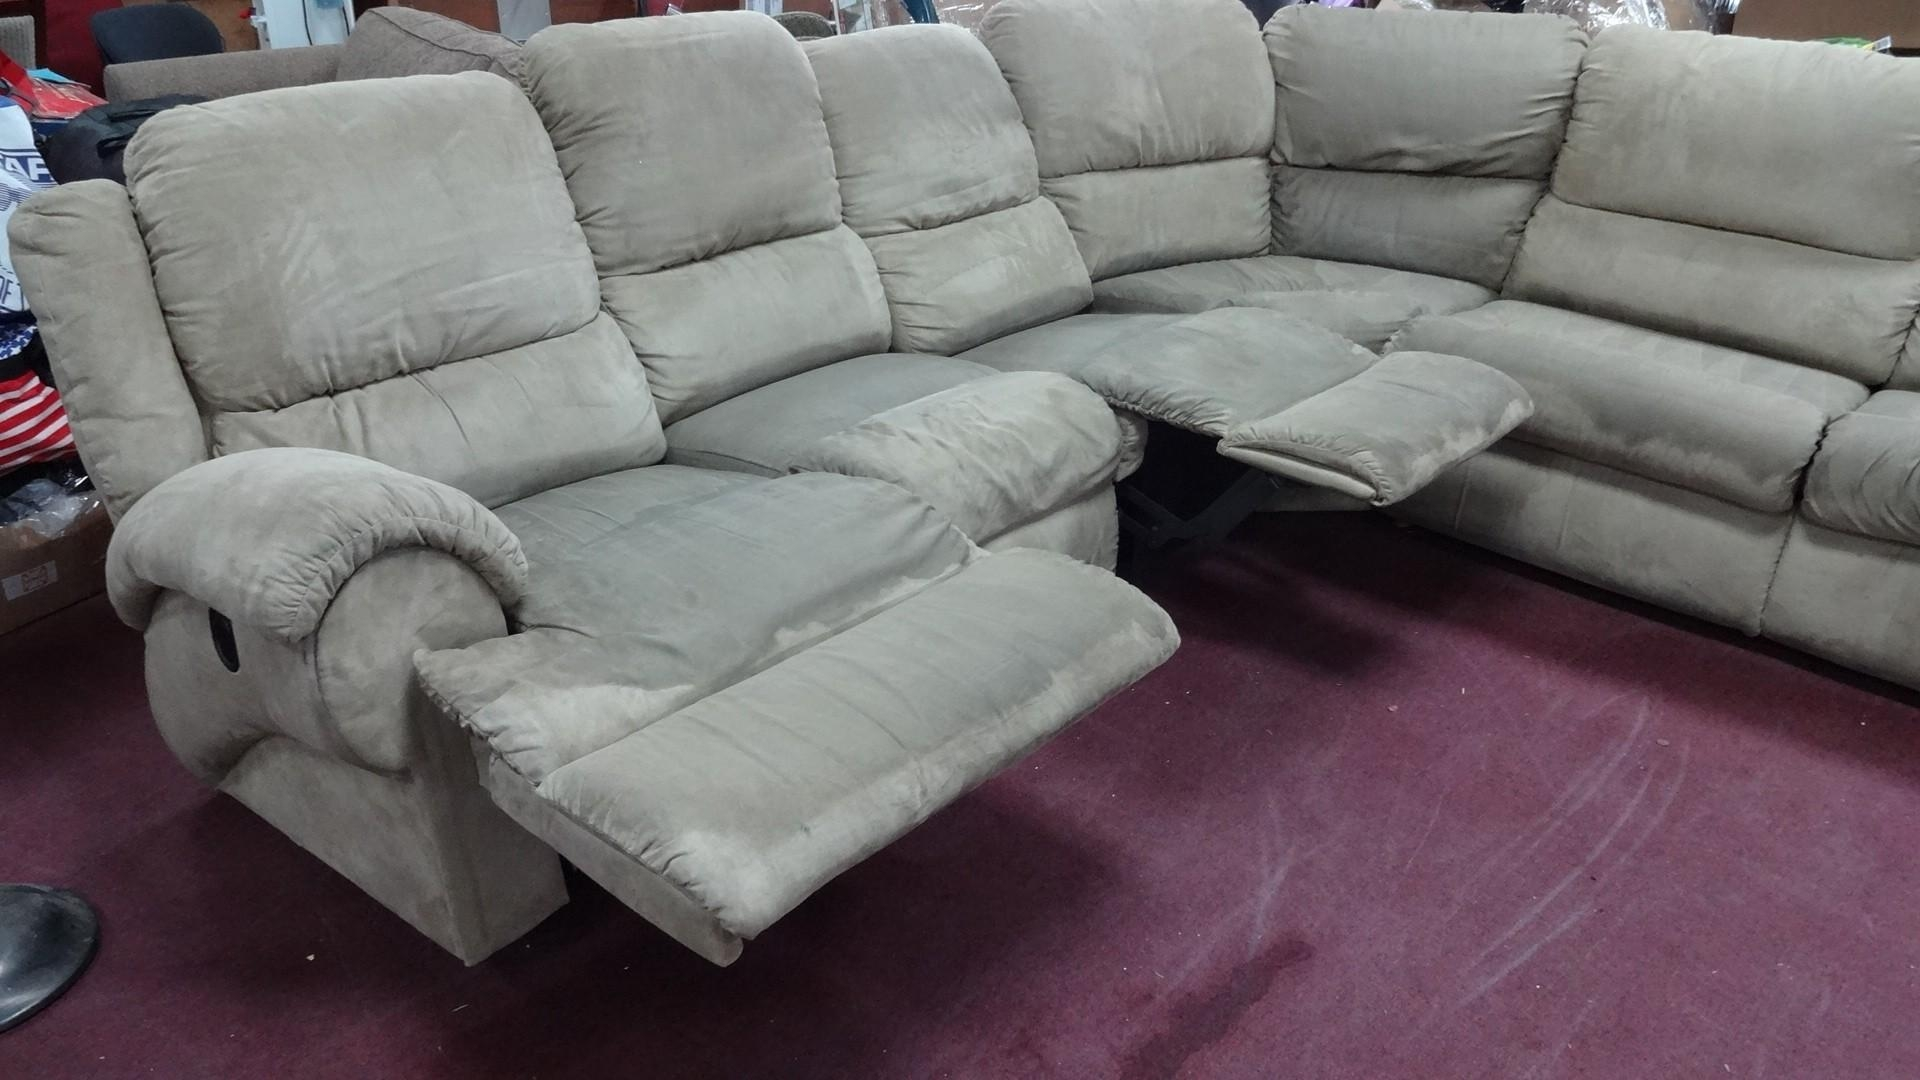 Sofas Center : Sectional Sofa Design Lazy Boy Sale James Sofas Intended For Lazyboy Sectional Sofas (View 12 of 20)